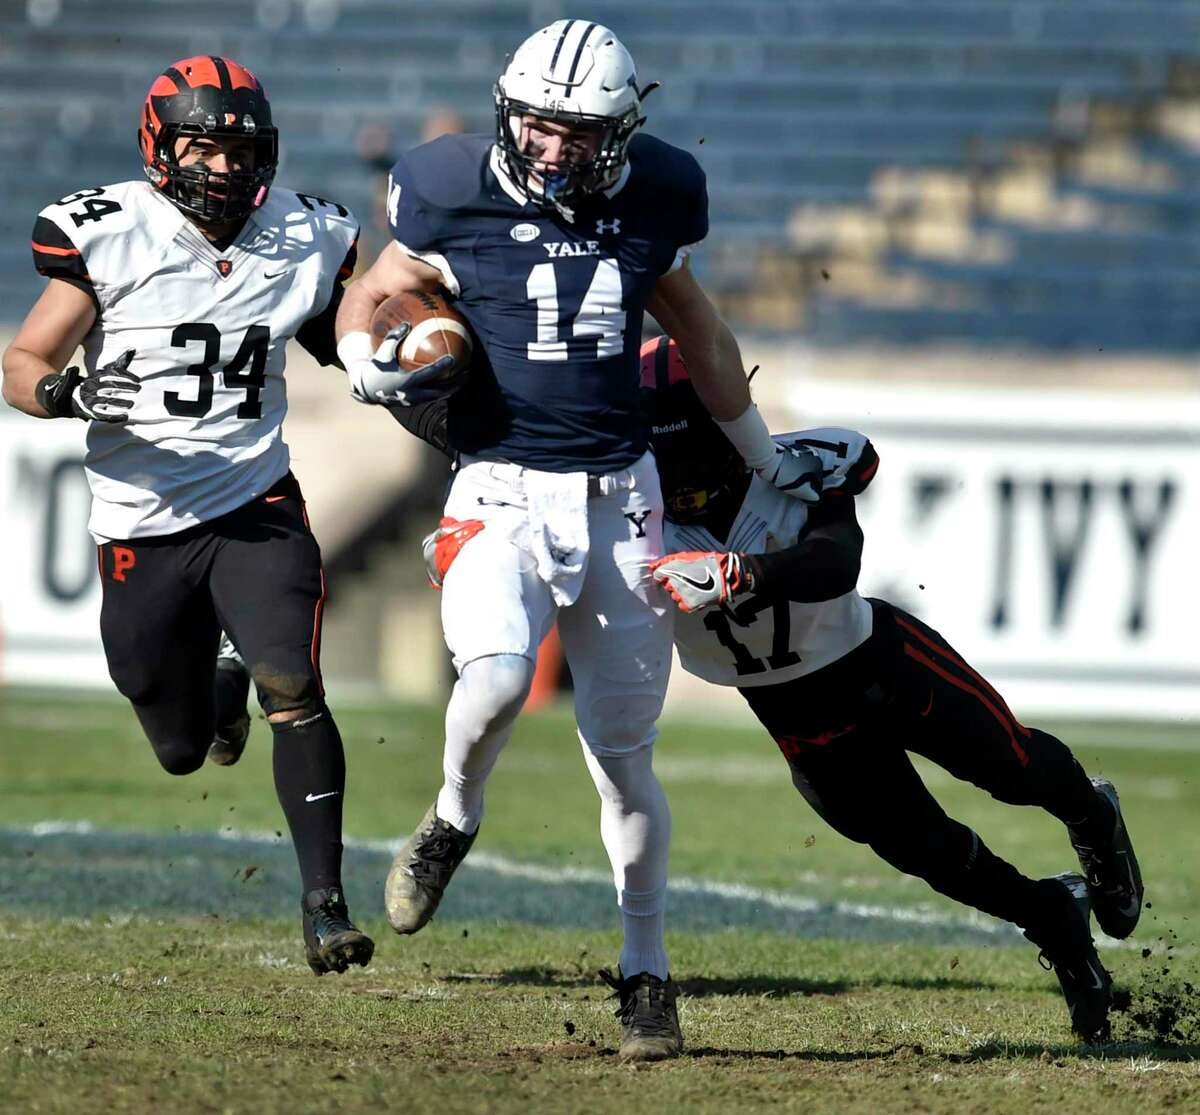 Reed Klubnik of Yale runs after a pass reception while pursued by Tom Johnson, left, and Delan Stallworth of Princetonon Nov. 10, 2018 at Yale Bowl.